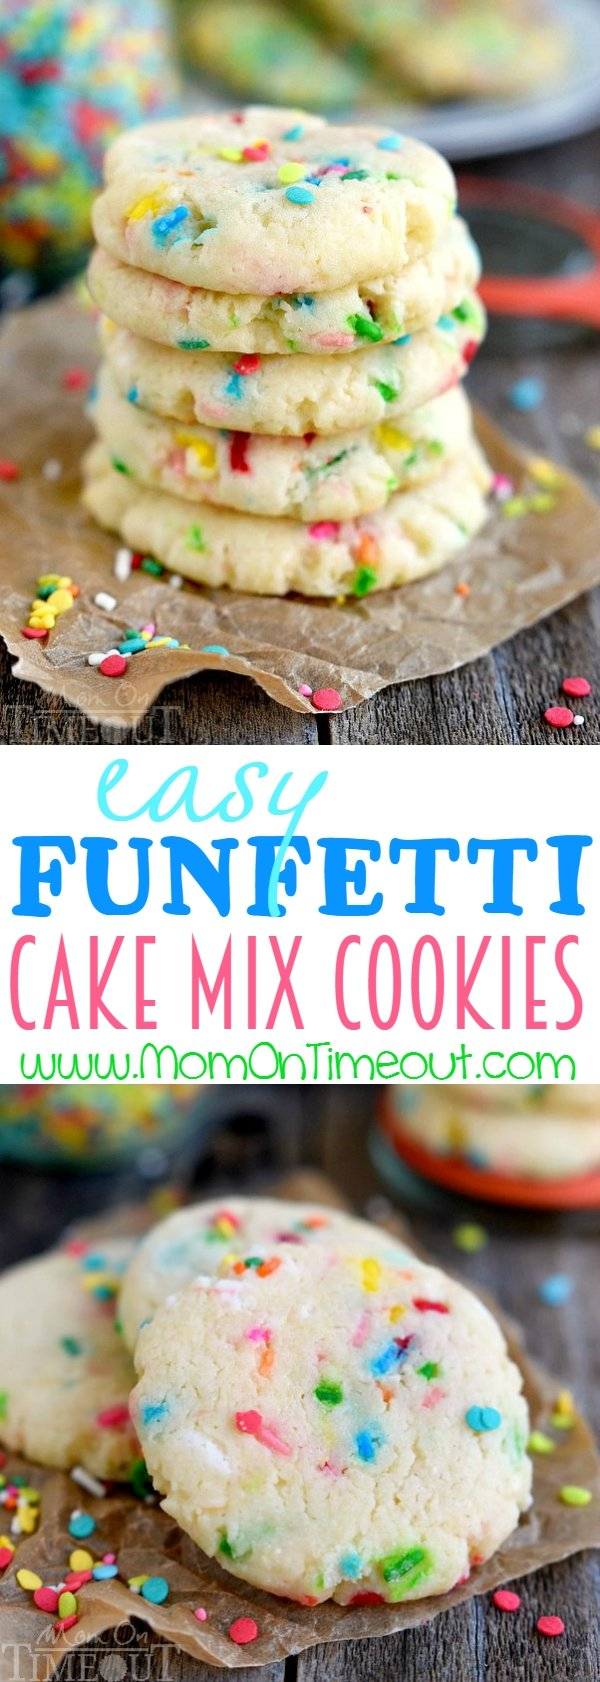 cake-mix-cookies-recipe